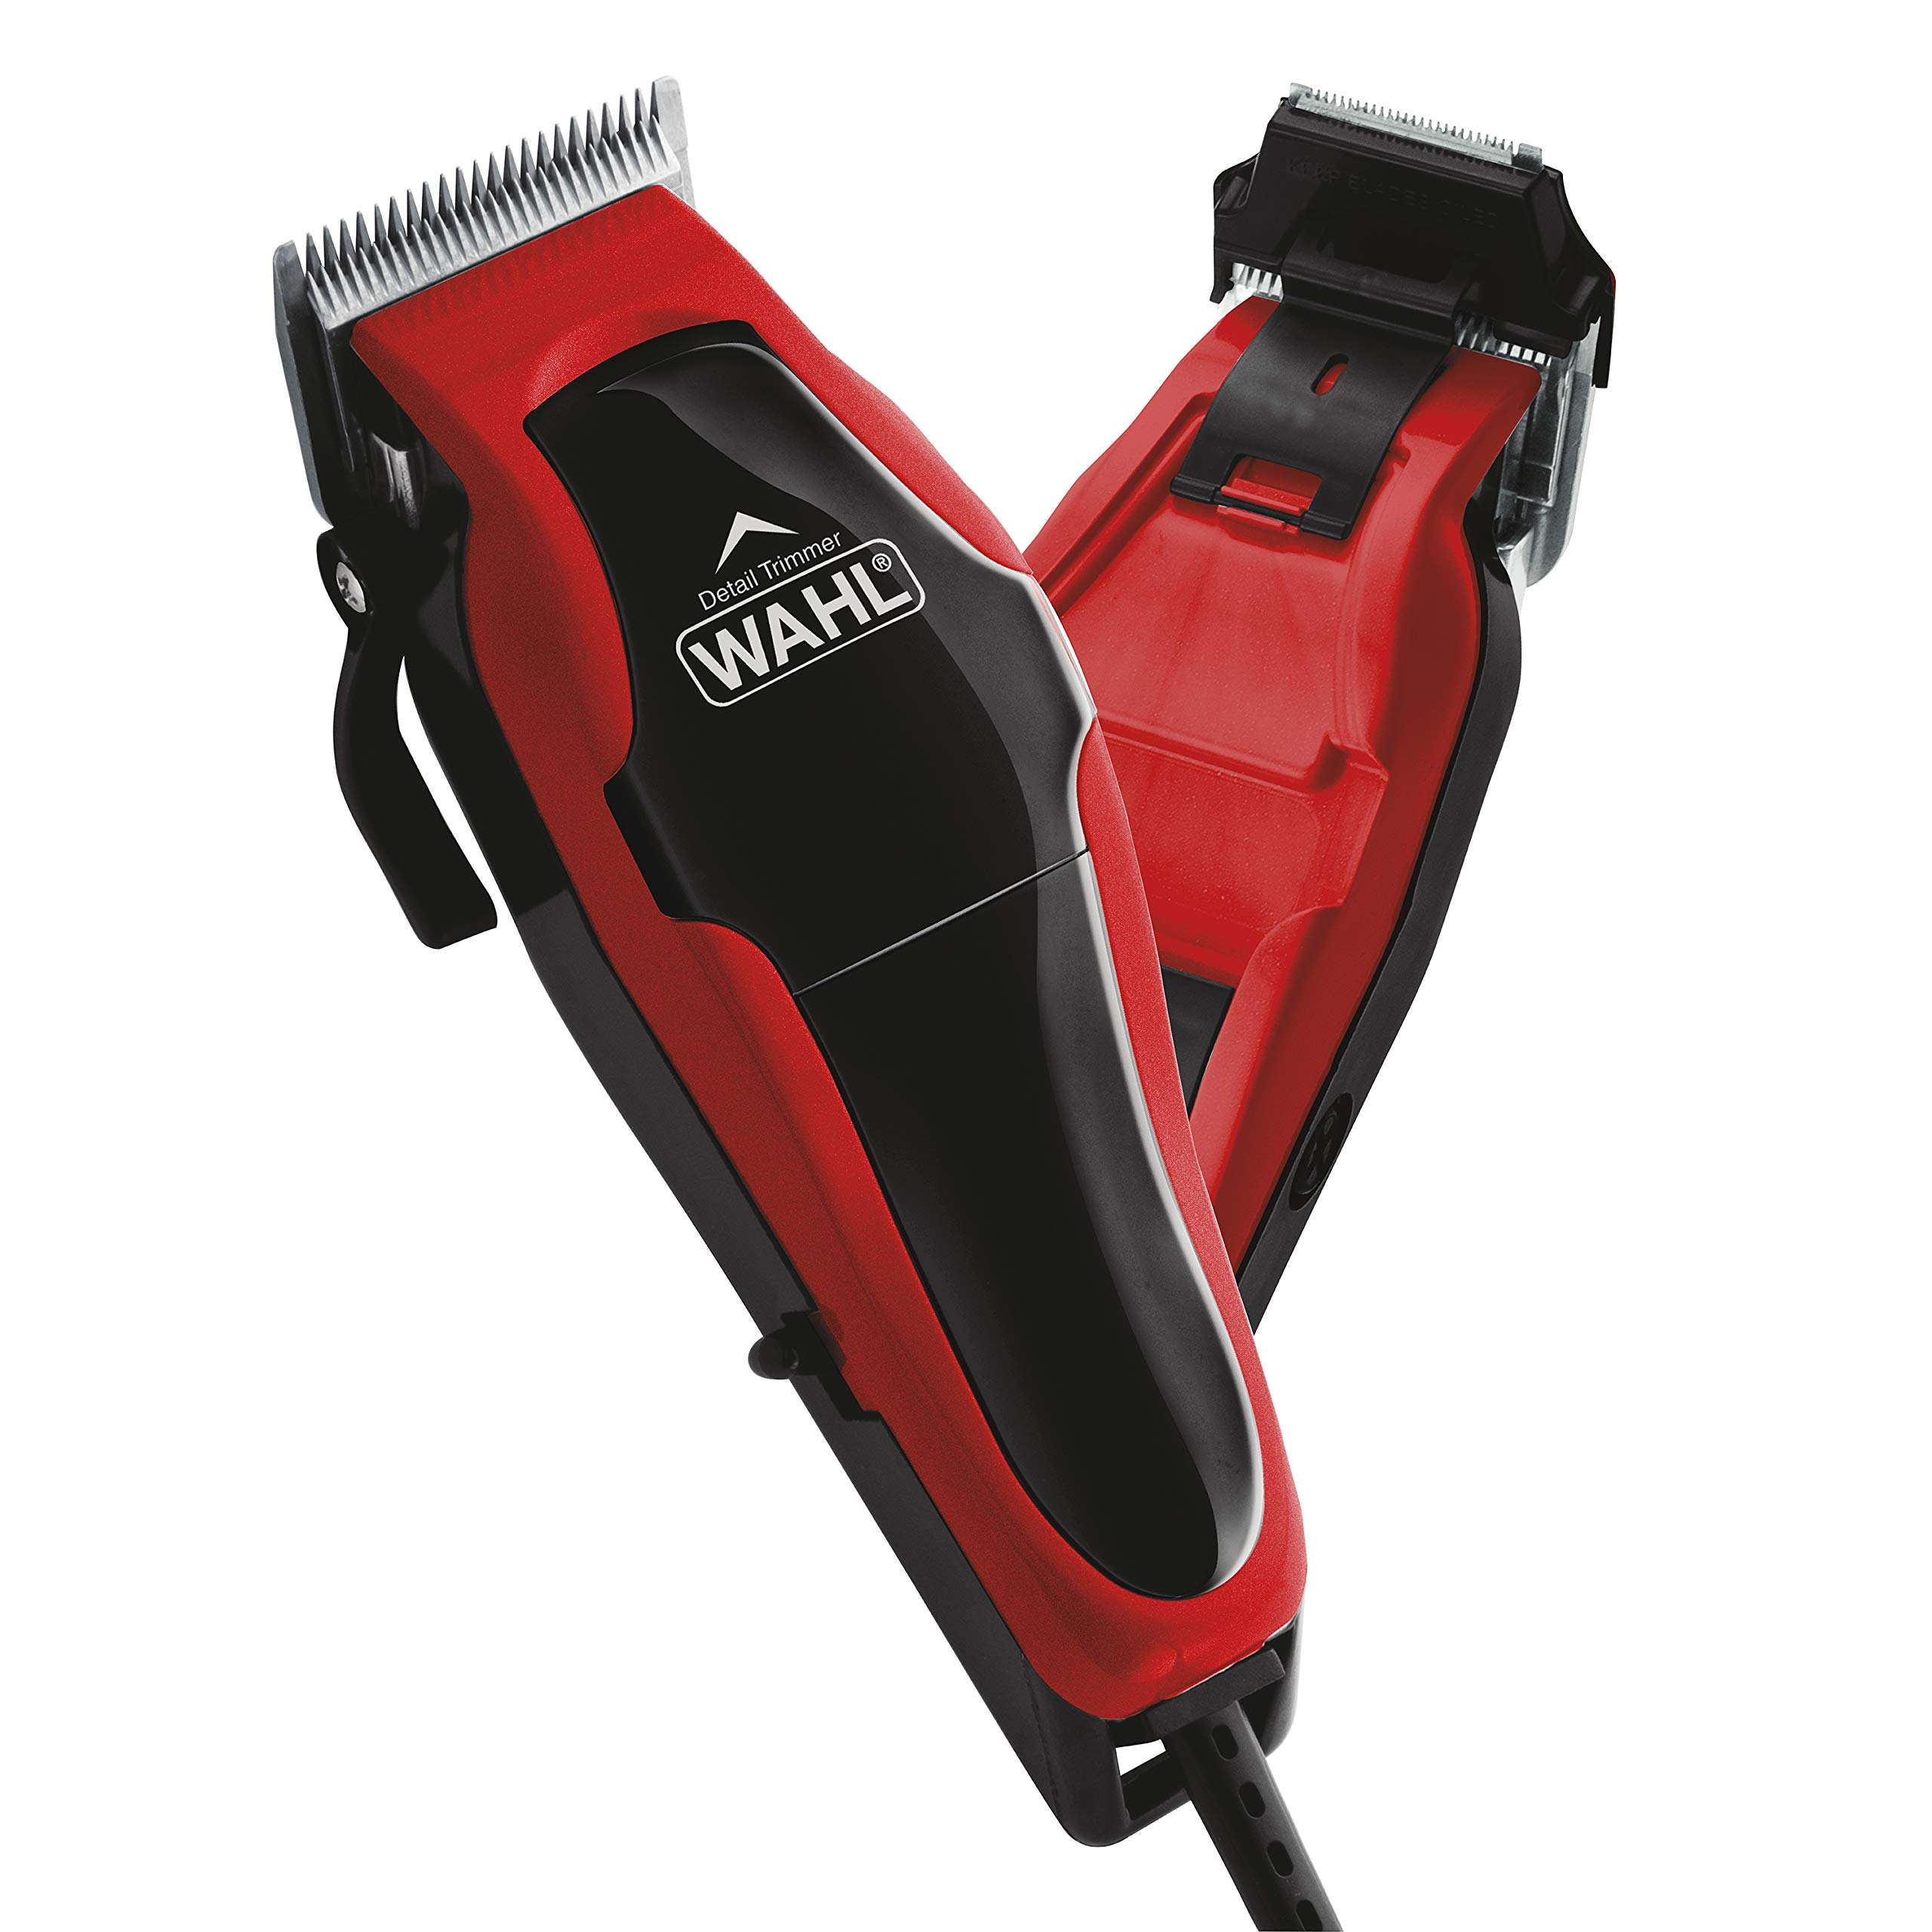 Wahl Clipper Clip 'n Trim 2 In 1 Hair Cutting Clipper/Trimmer Kit with Self Sharpening Blades, Red